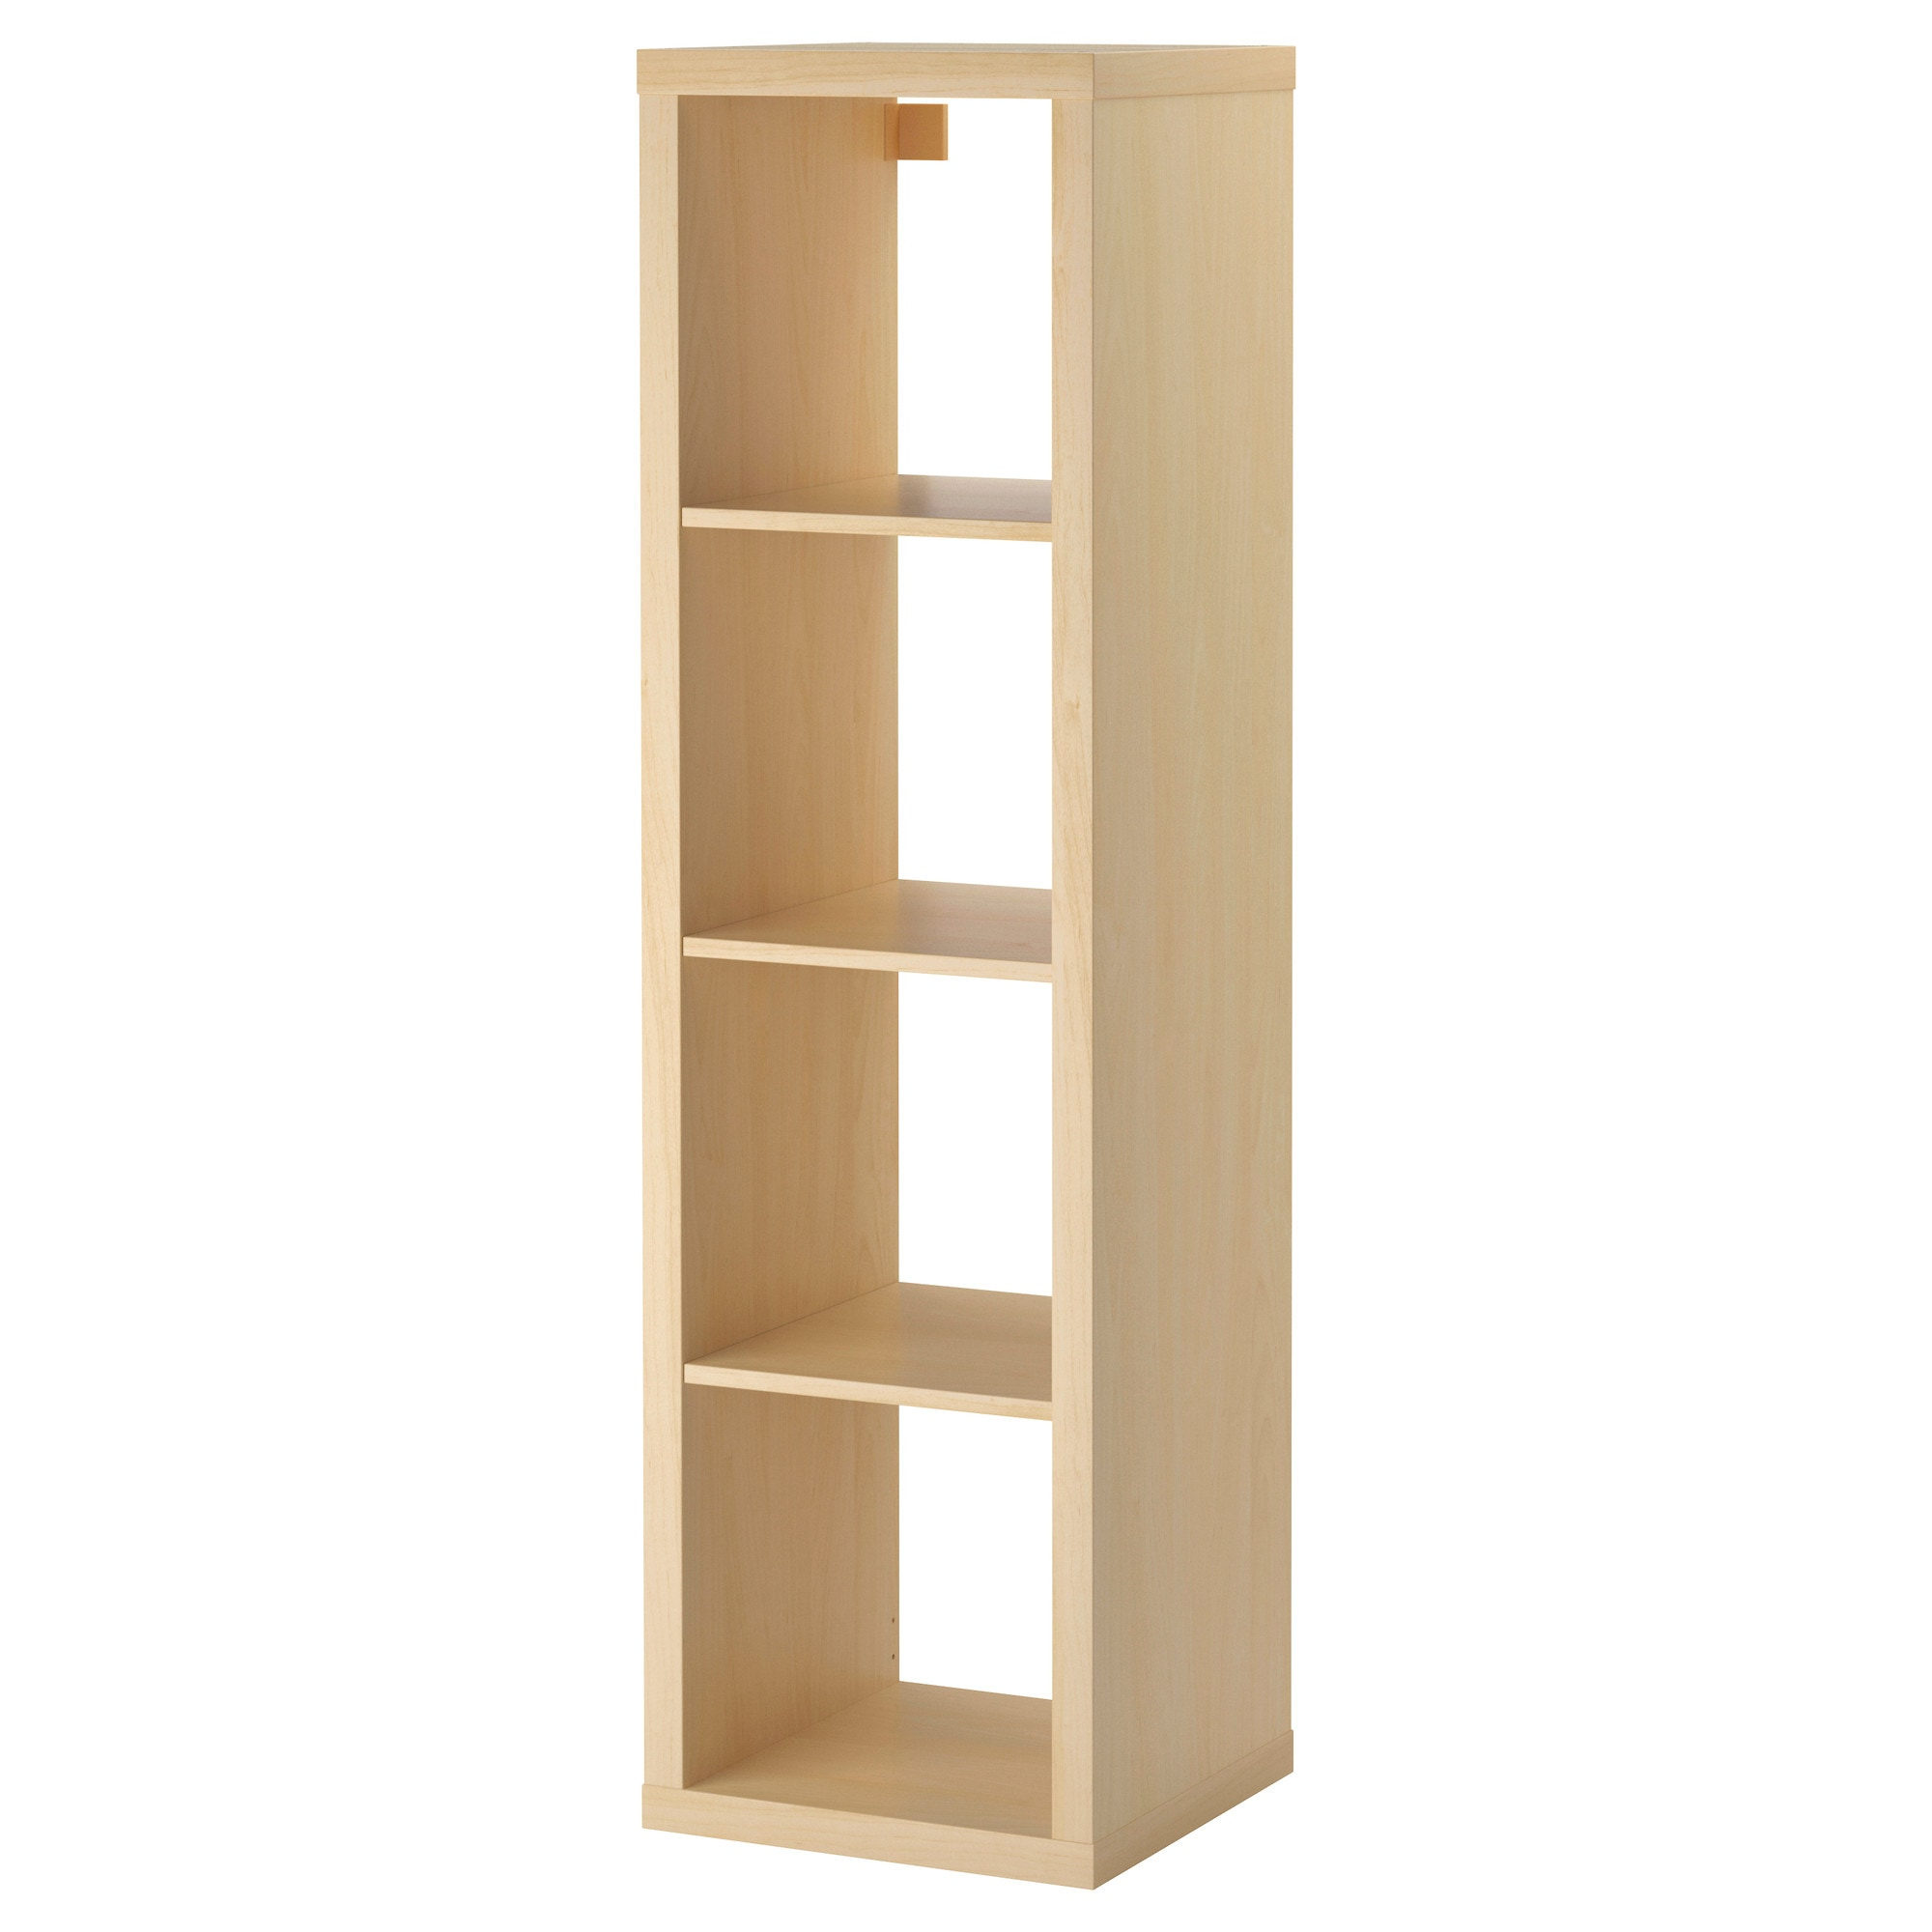 . KALLAX Shelf unit   white   IKEA